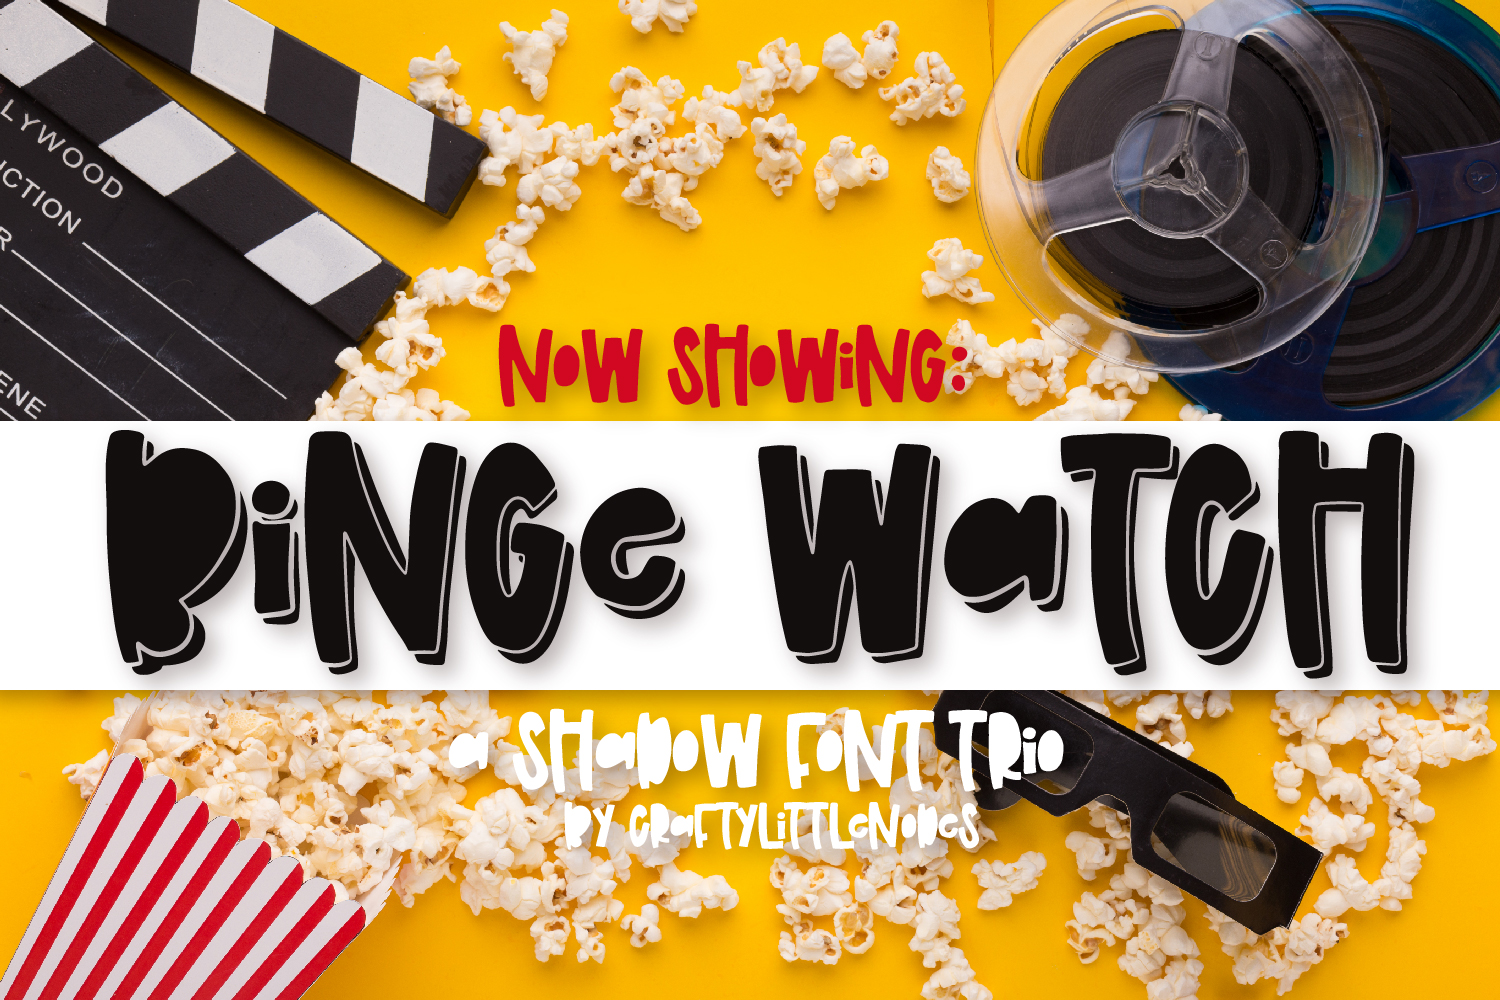 Binge Watch - A Shadow Font Trio example image 1